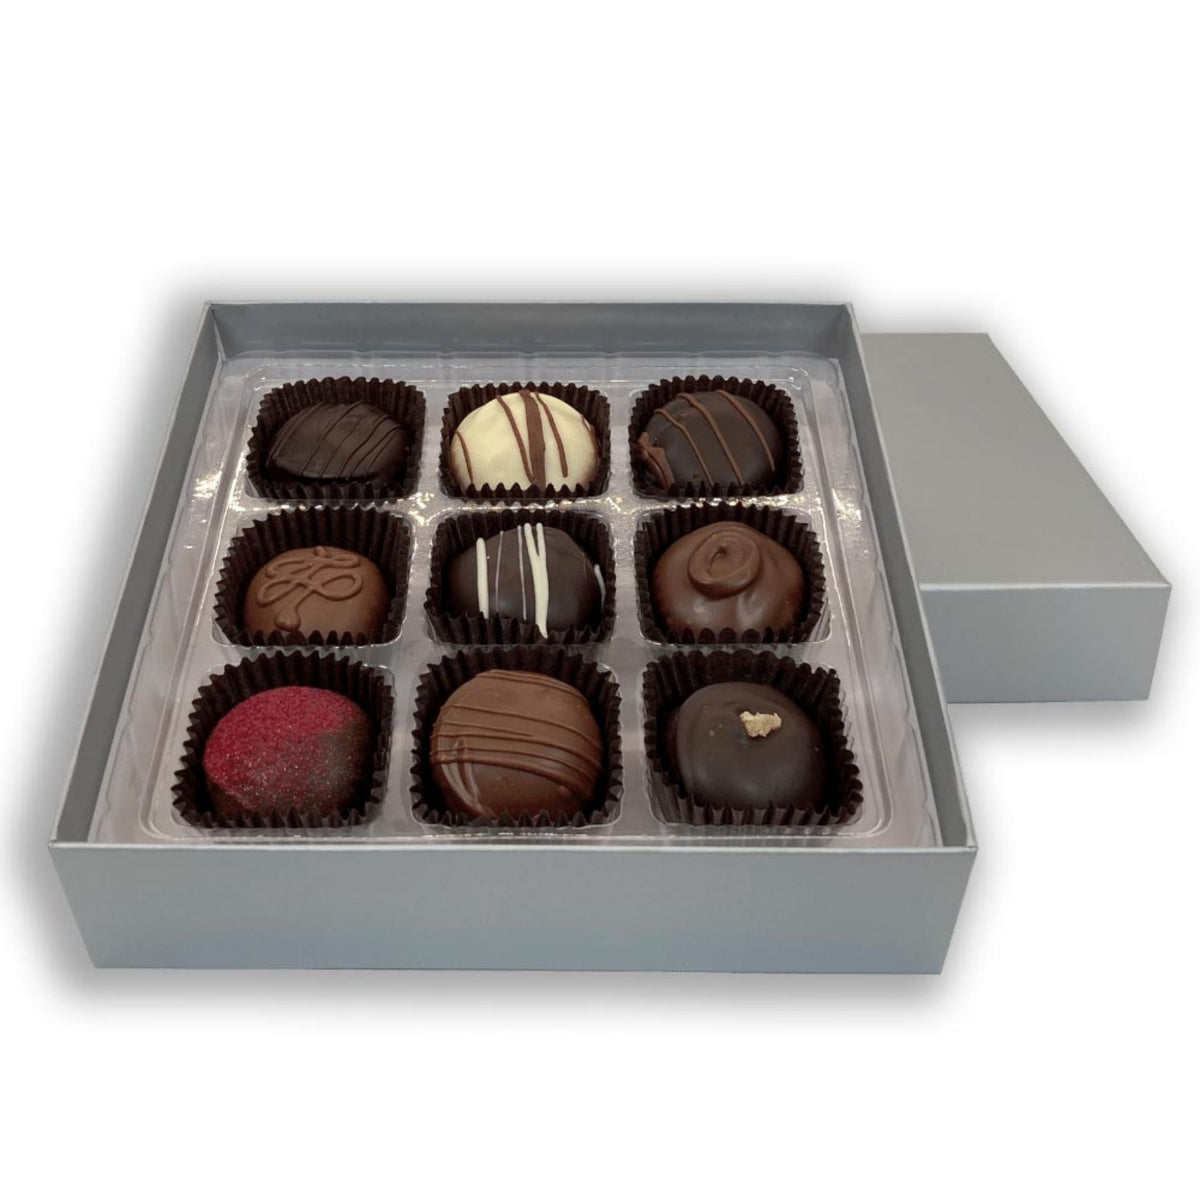 Dilettante Chocolates Individually Crafted Chocolate Truffle Gift Box Featuring Nine Different Truffle Flavors